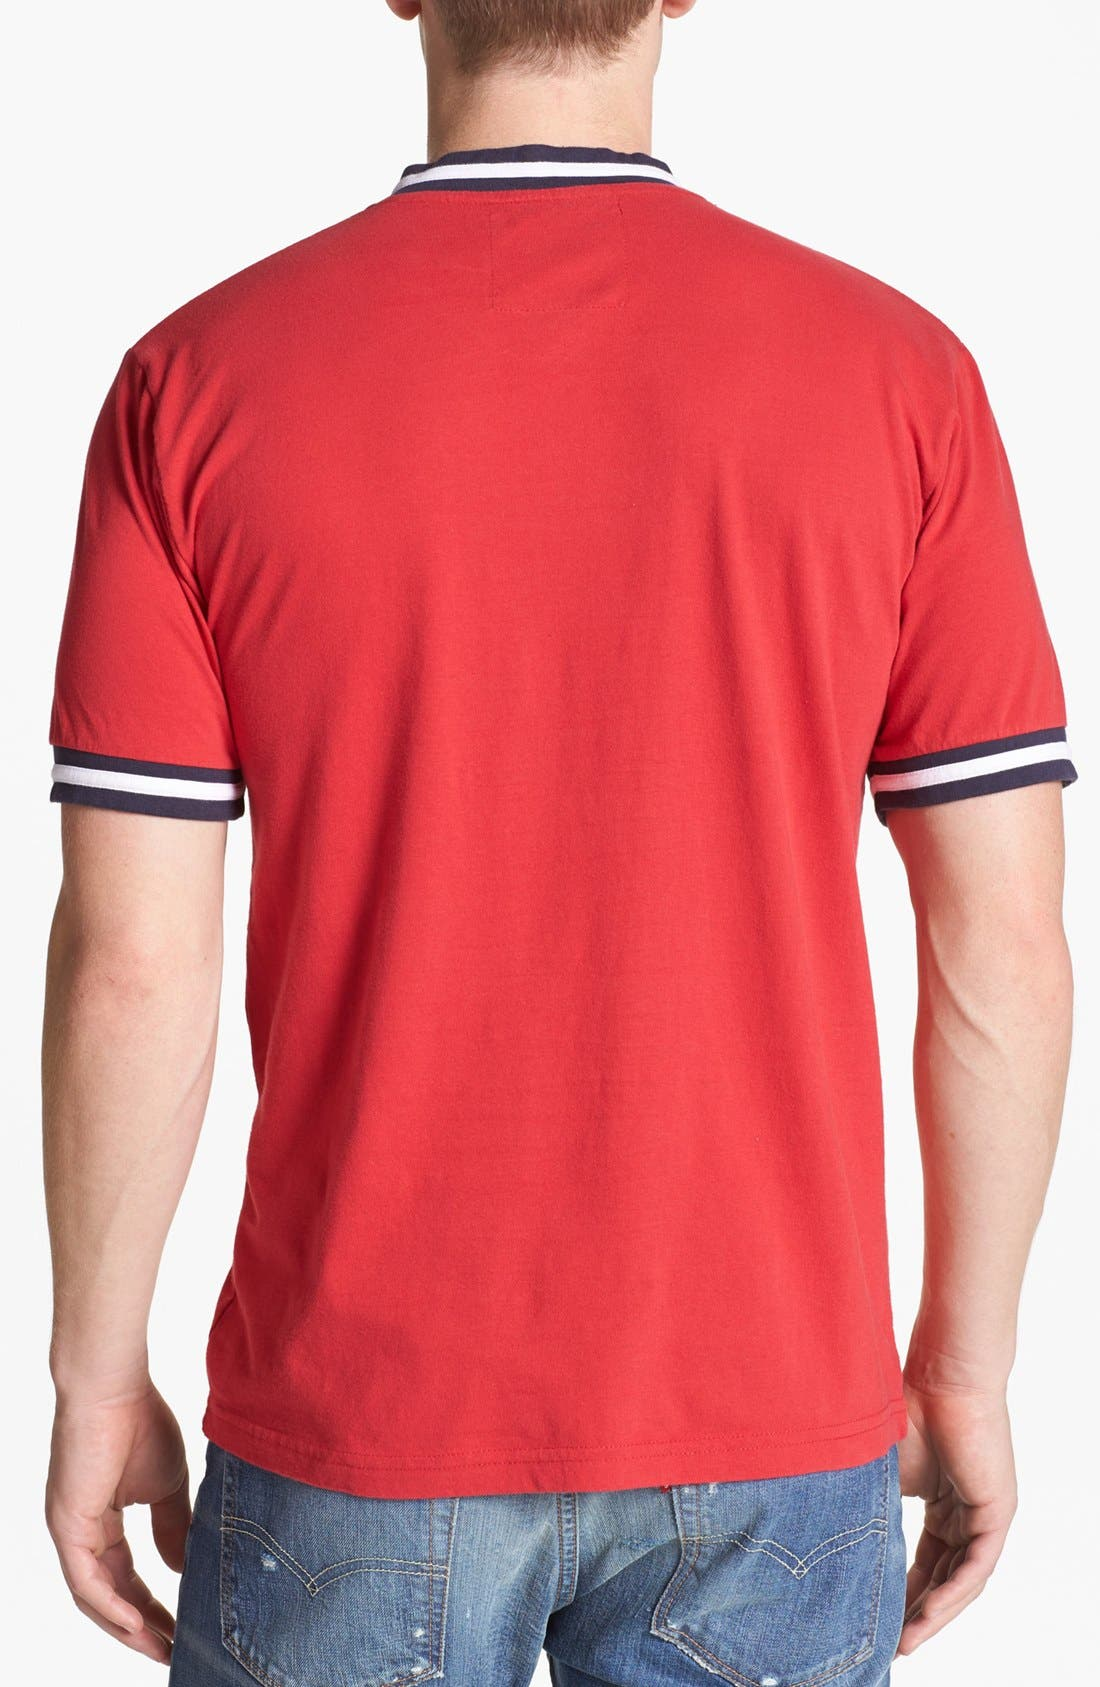 Alternate Image 2  - Wright & Ditson 'St. Louis Cardinals' V-Neck T-Shirt